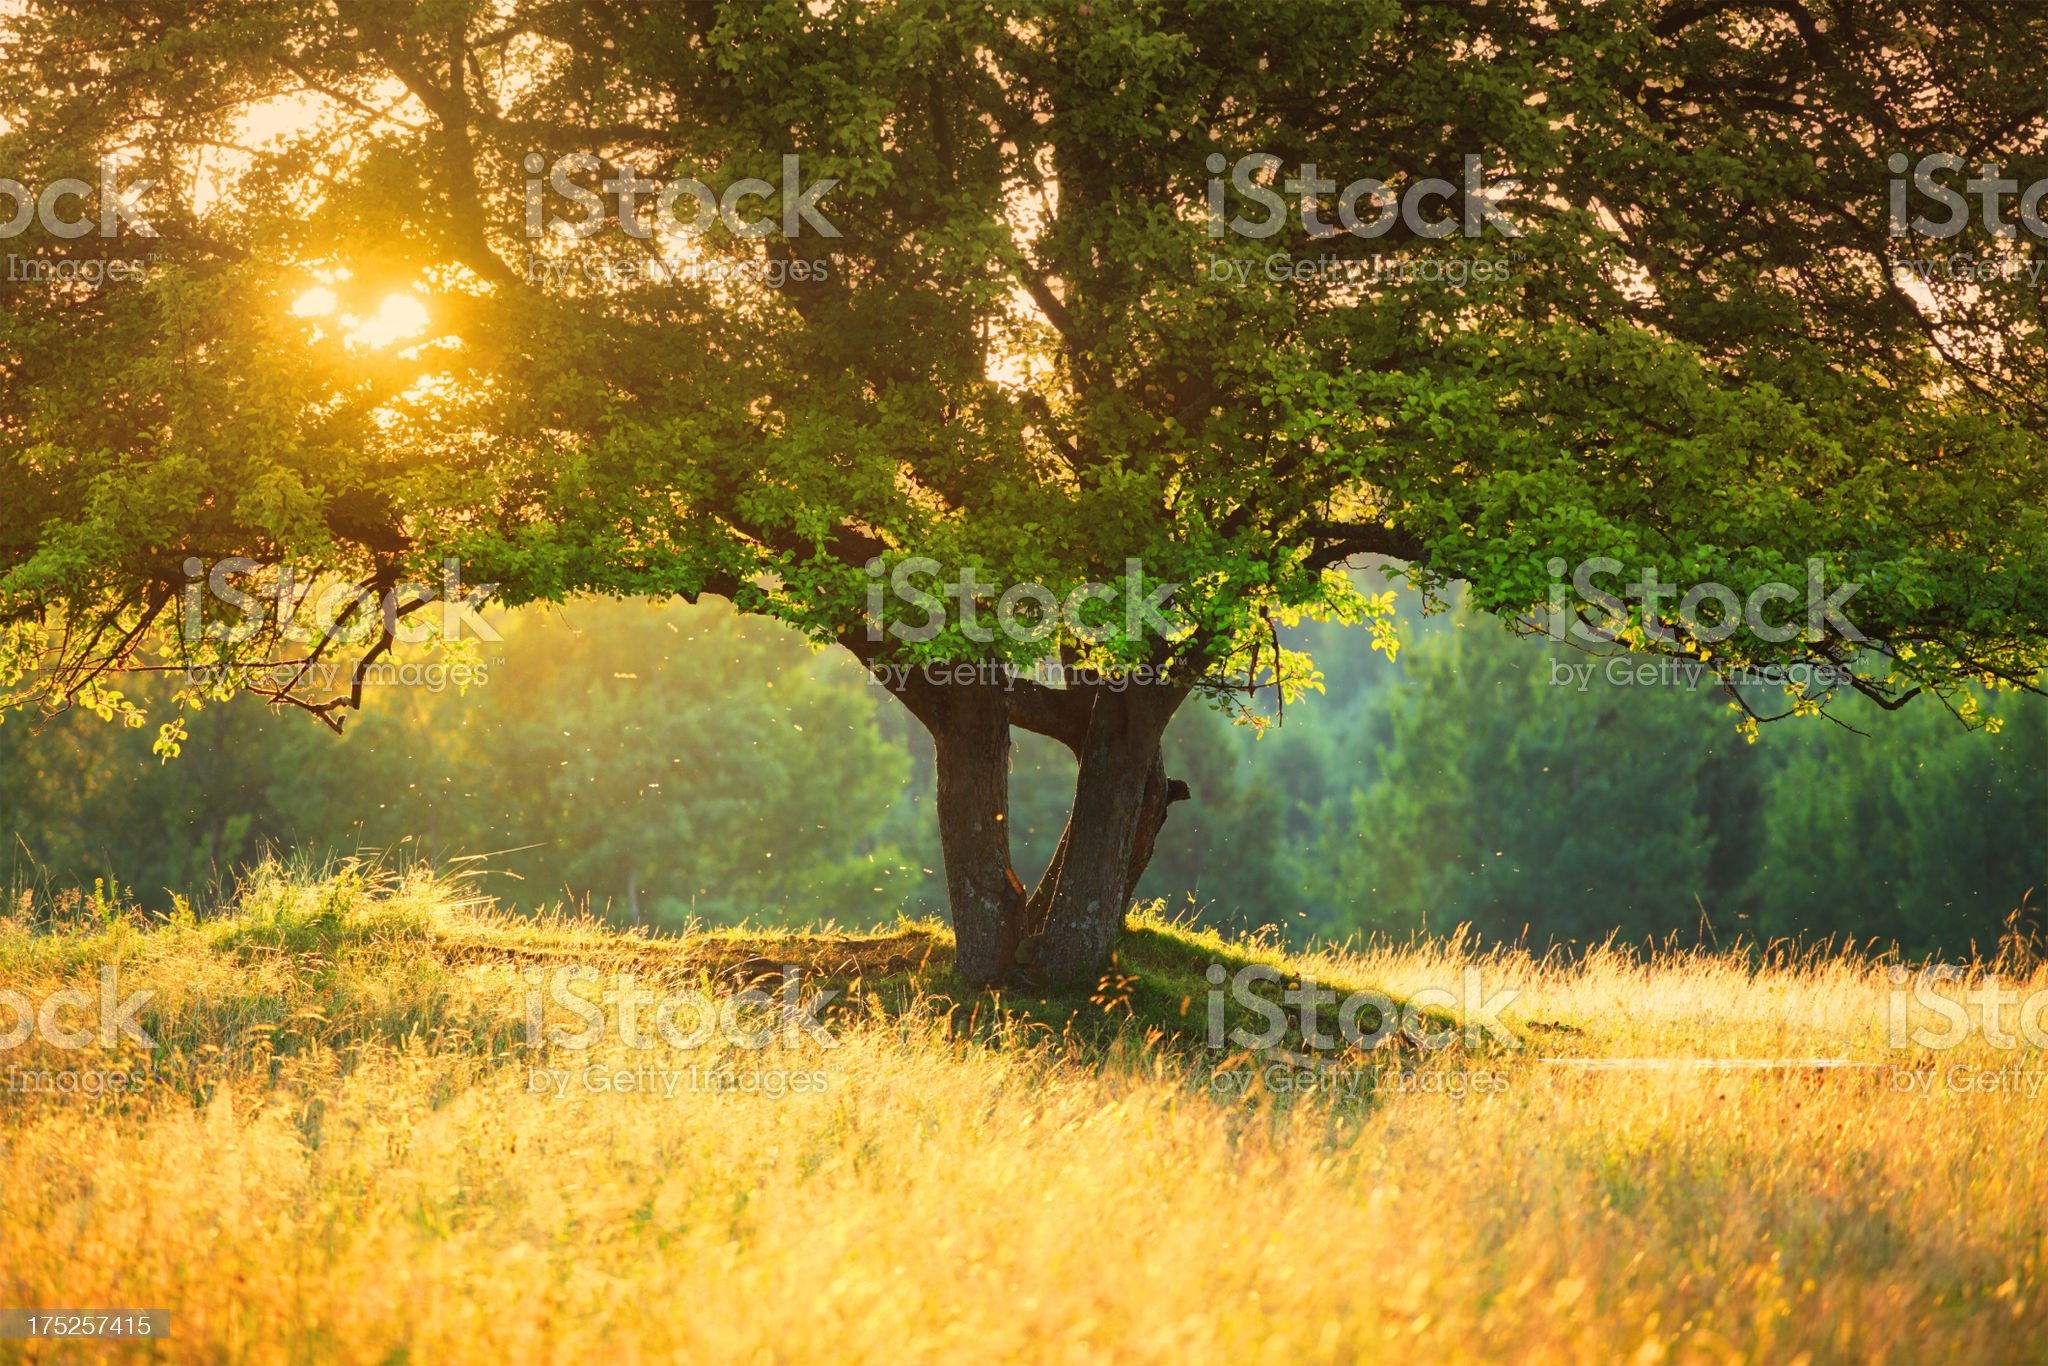 Majestic Tree against Harsh Sunlight during Colorful Sunset -shallow DOF royalty-free stock photo